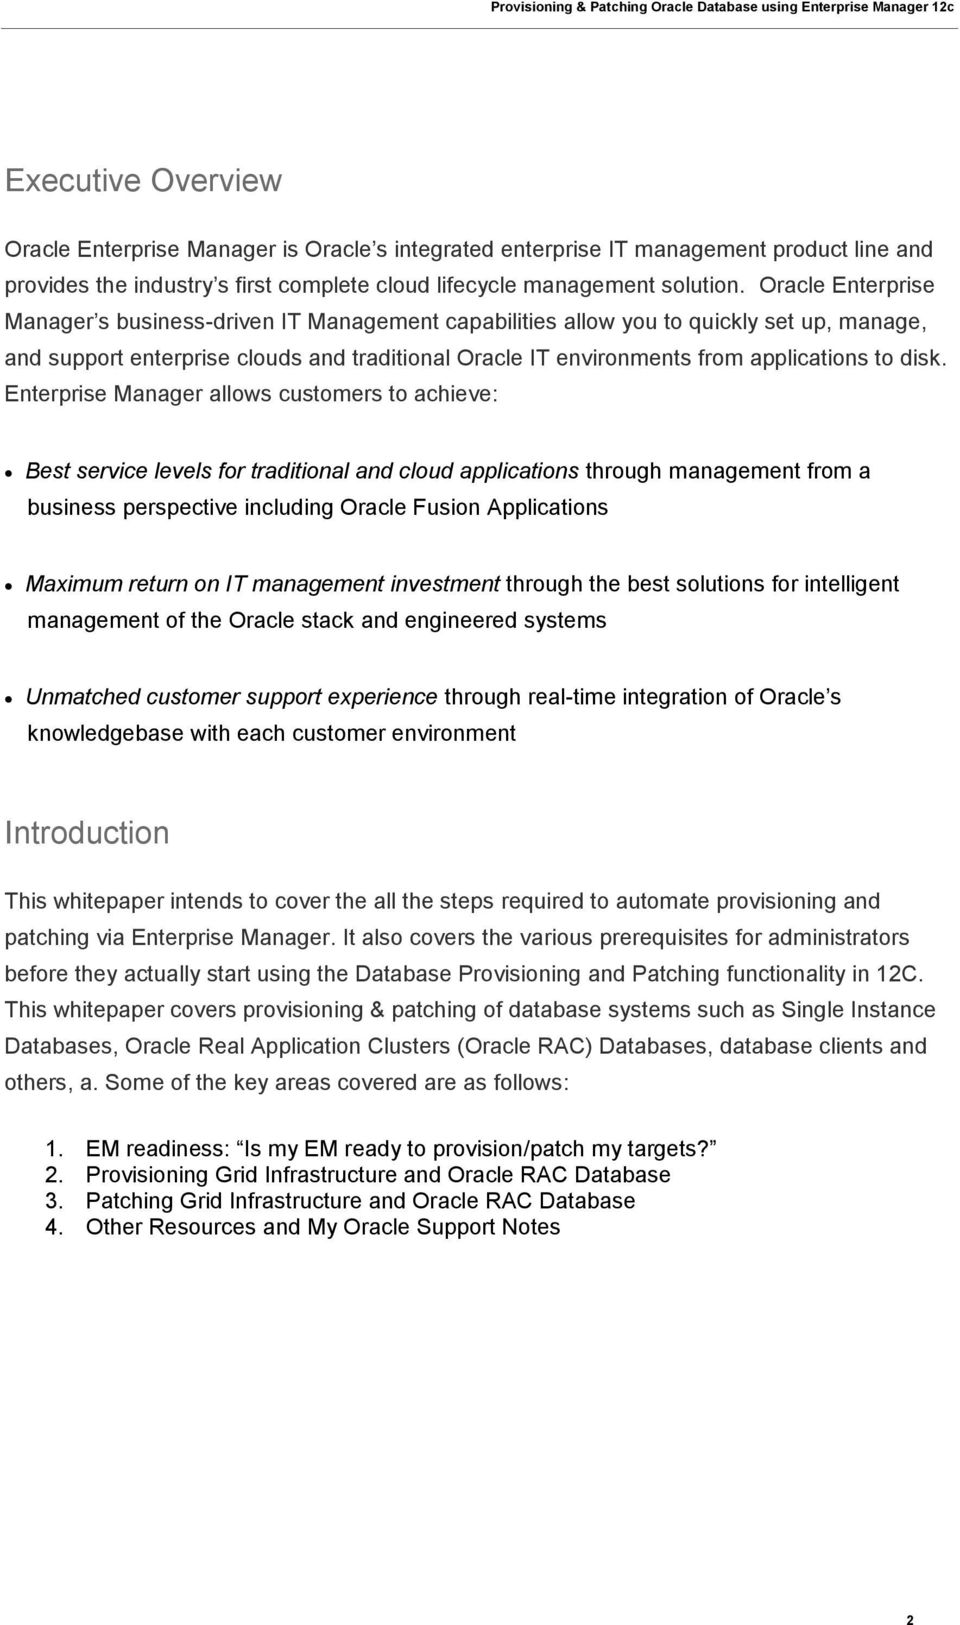 disk. Enterprise Manager allows customers to achieve: Best service levels for traditional and cloud applications through management from a business perspective including Oracle Fusion Applications